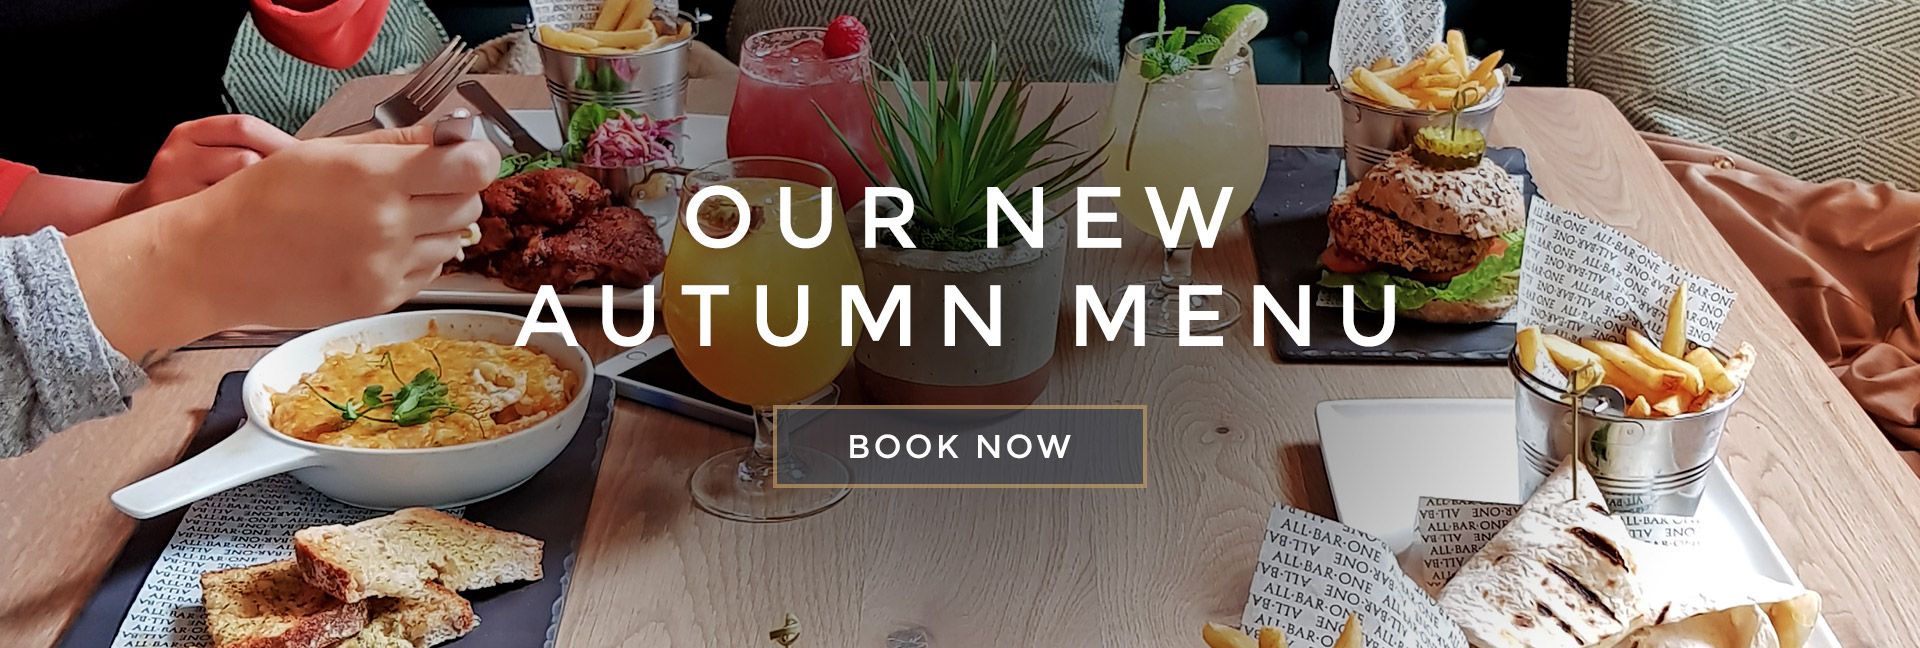 Our new Autumn menu at All Bar One GeorgeSt Edinburgh - Book now